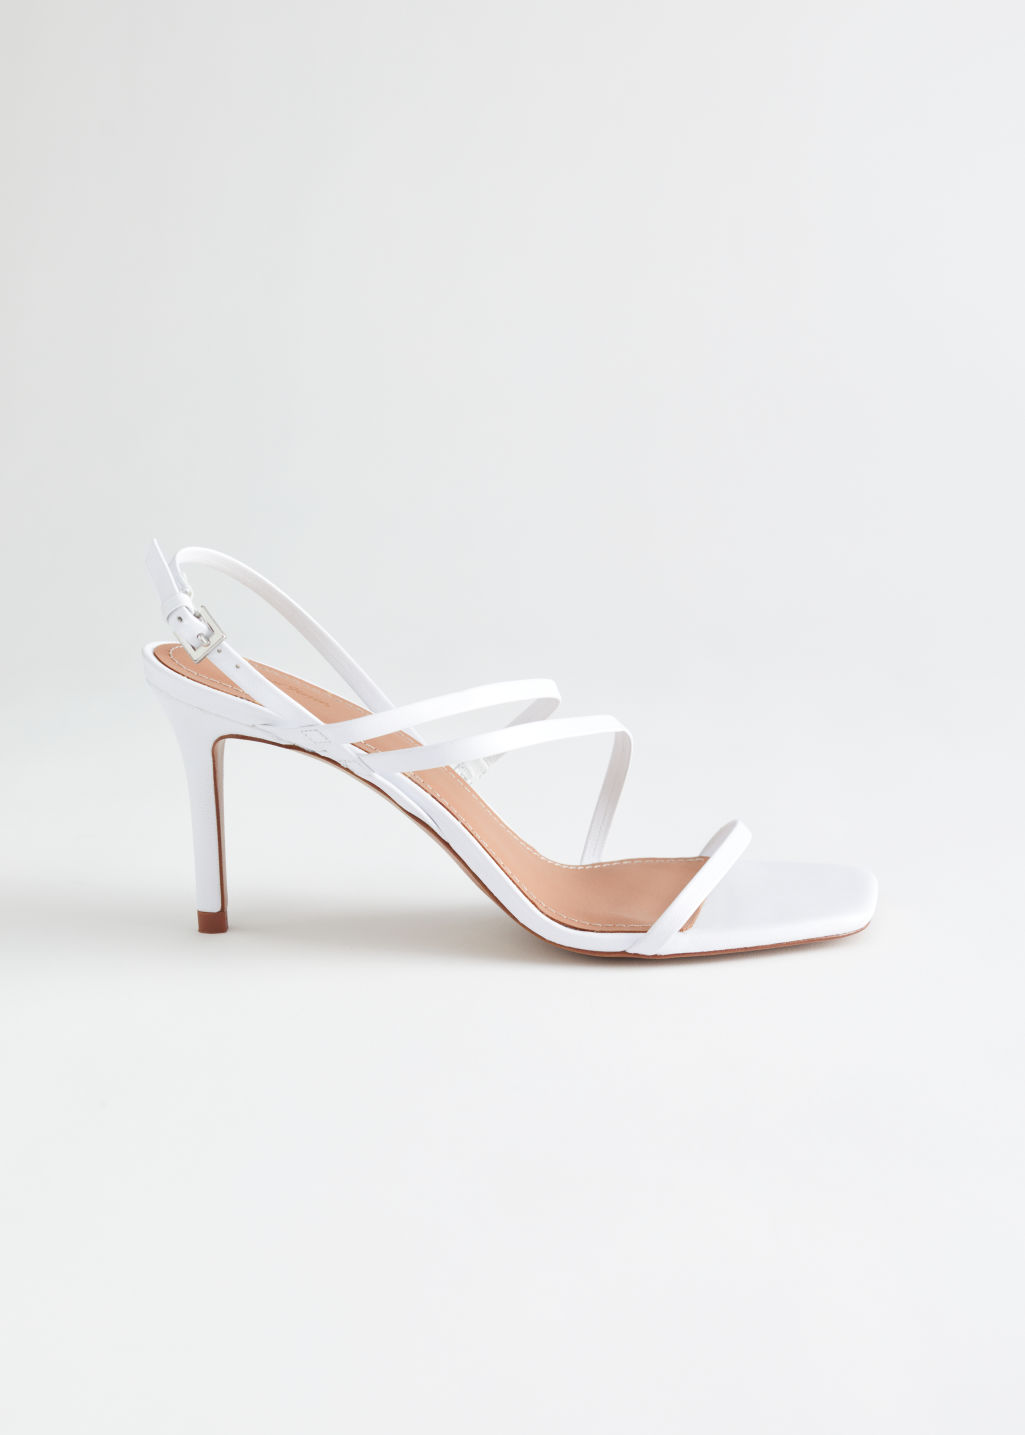 StillLife Left Image of Stories Strappy Leather Heeled Sandal in White